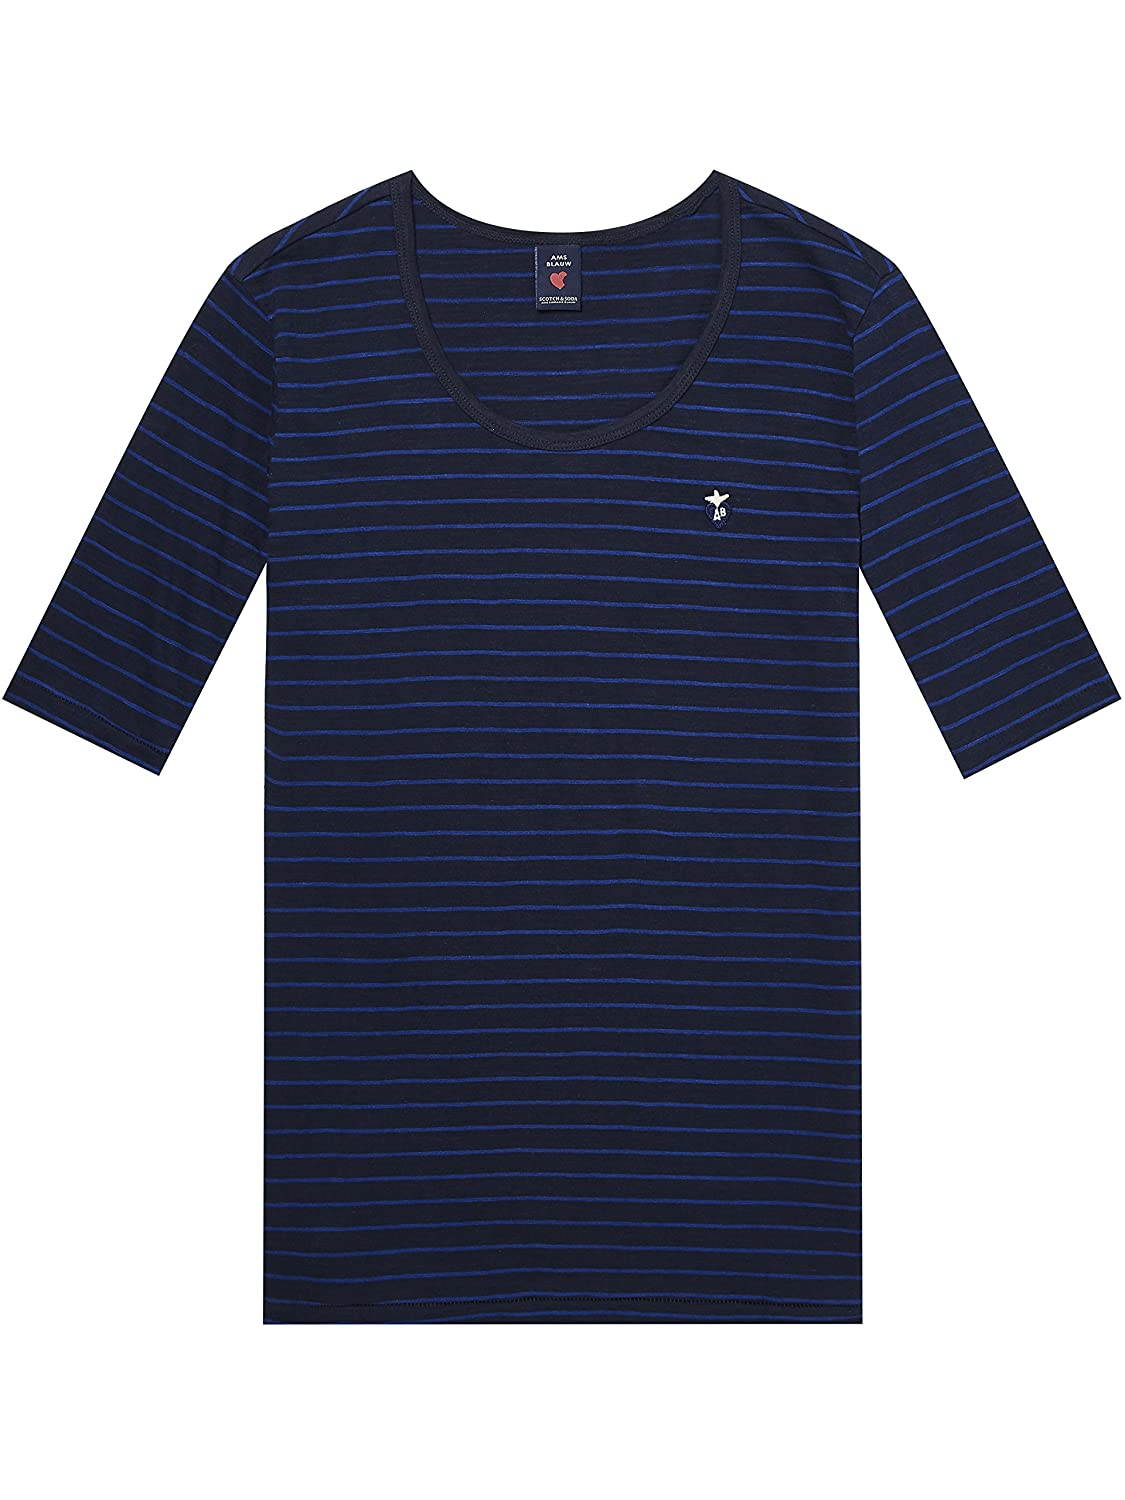 Scotch & Soda Striped Classic S/S Round Neck tee, Camiseta para Mujer